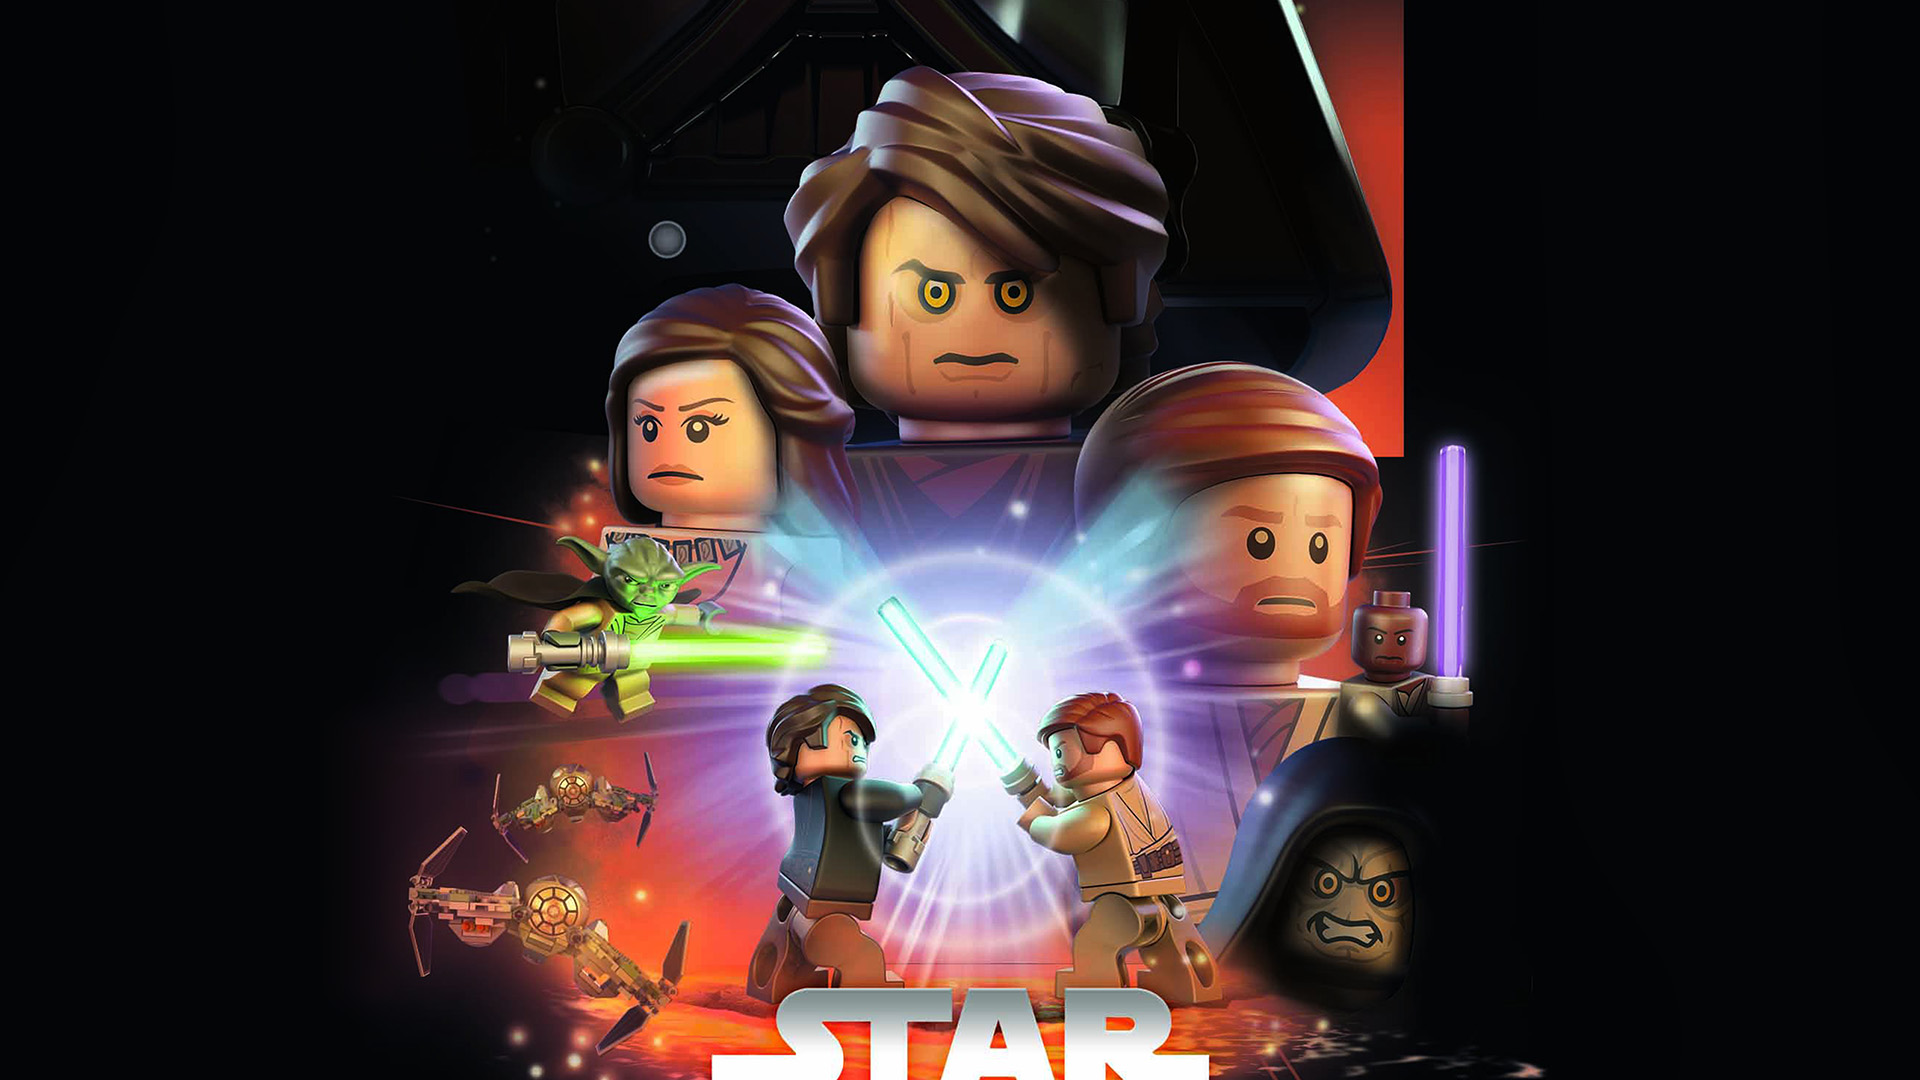 Google Wallpaper Images Fall Ap22 Starwars Lego Episode 3 Revenge Of The Sith Art Film